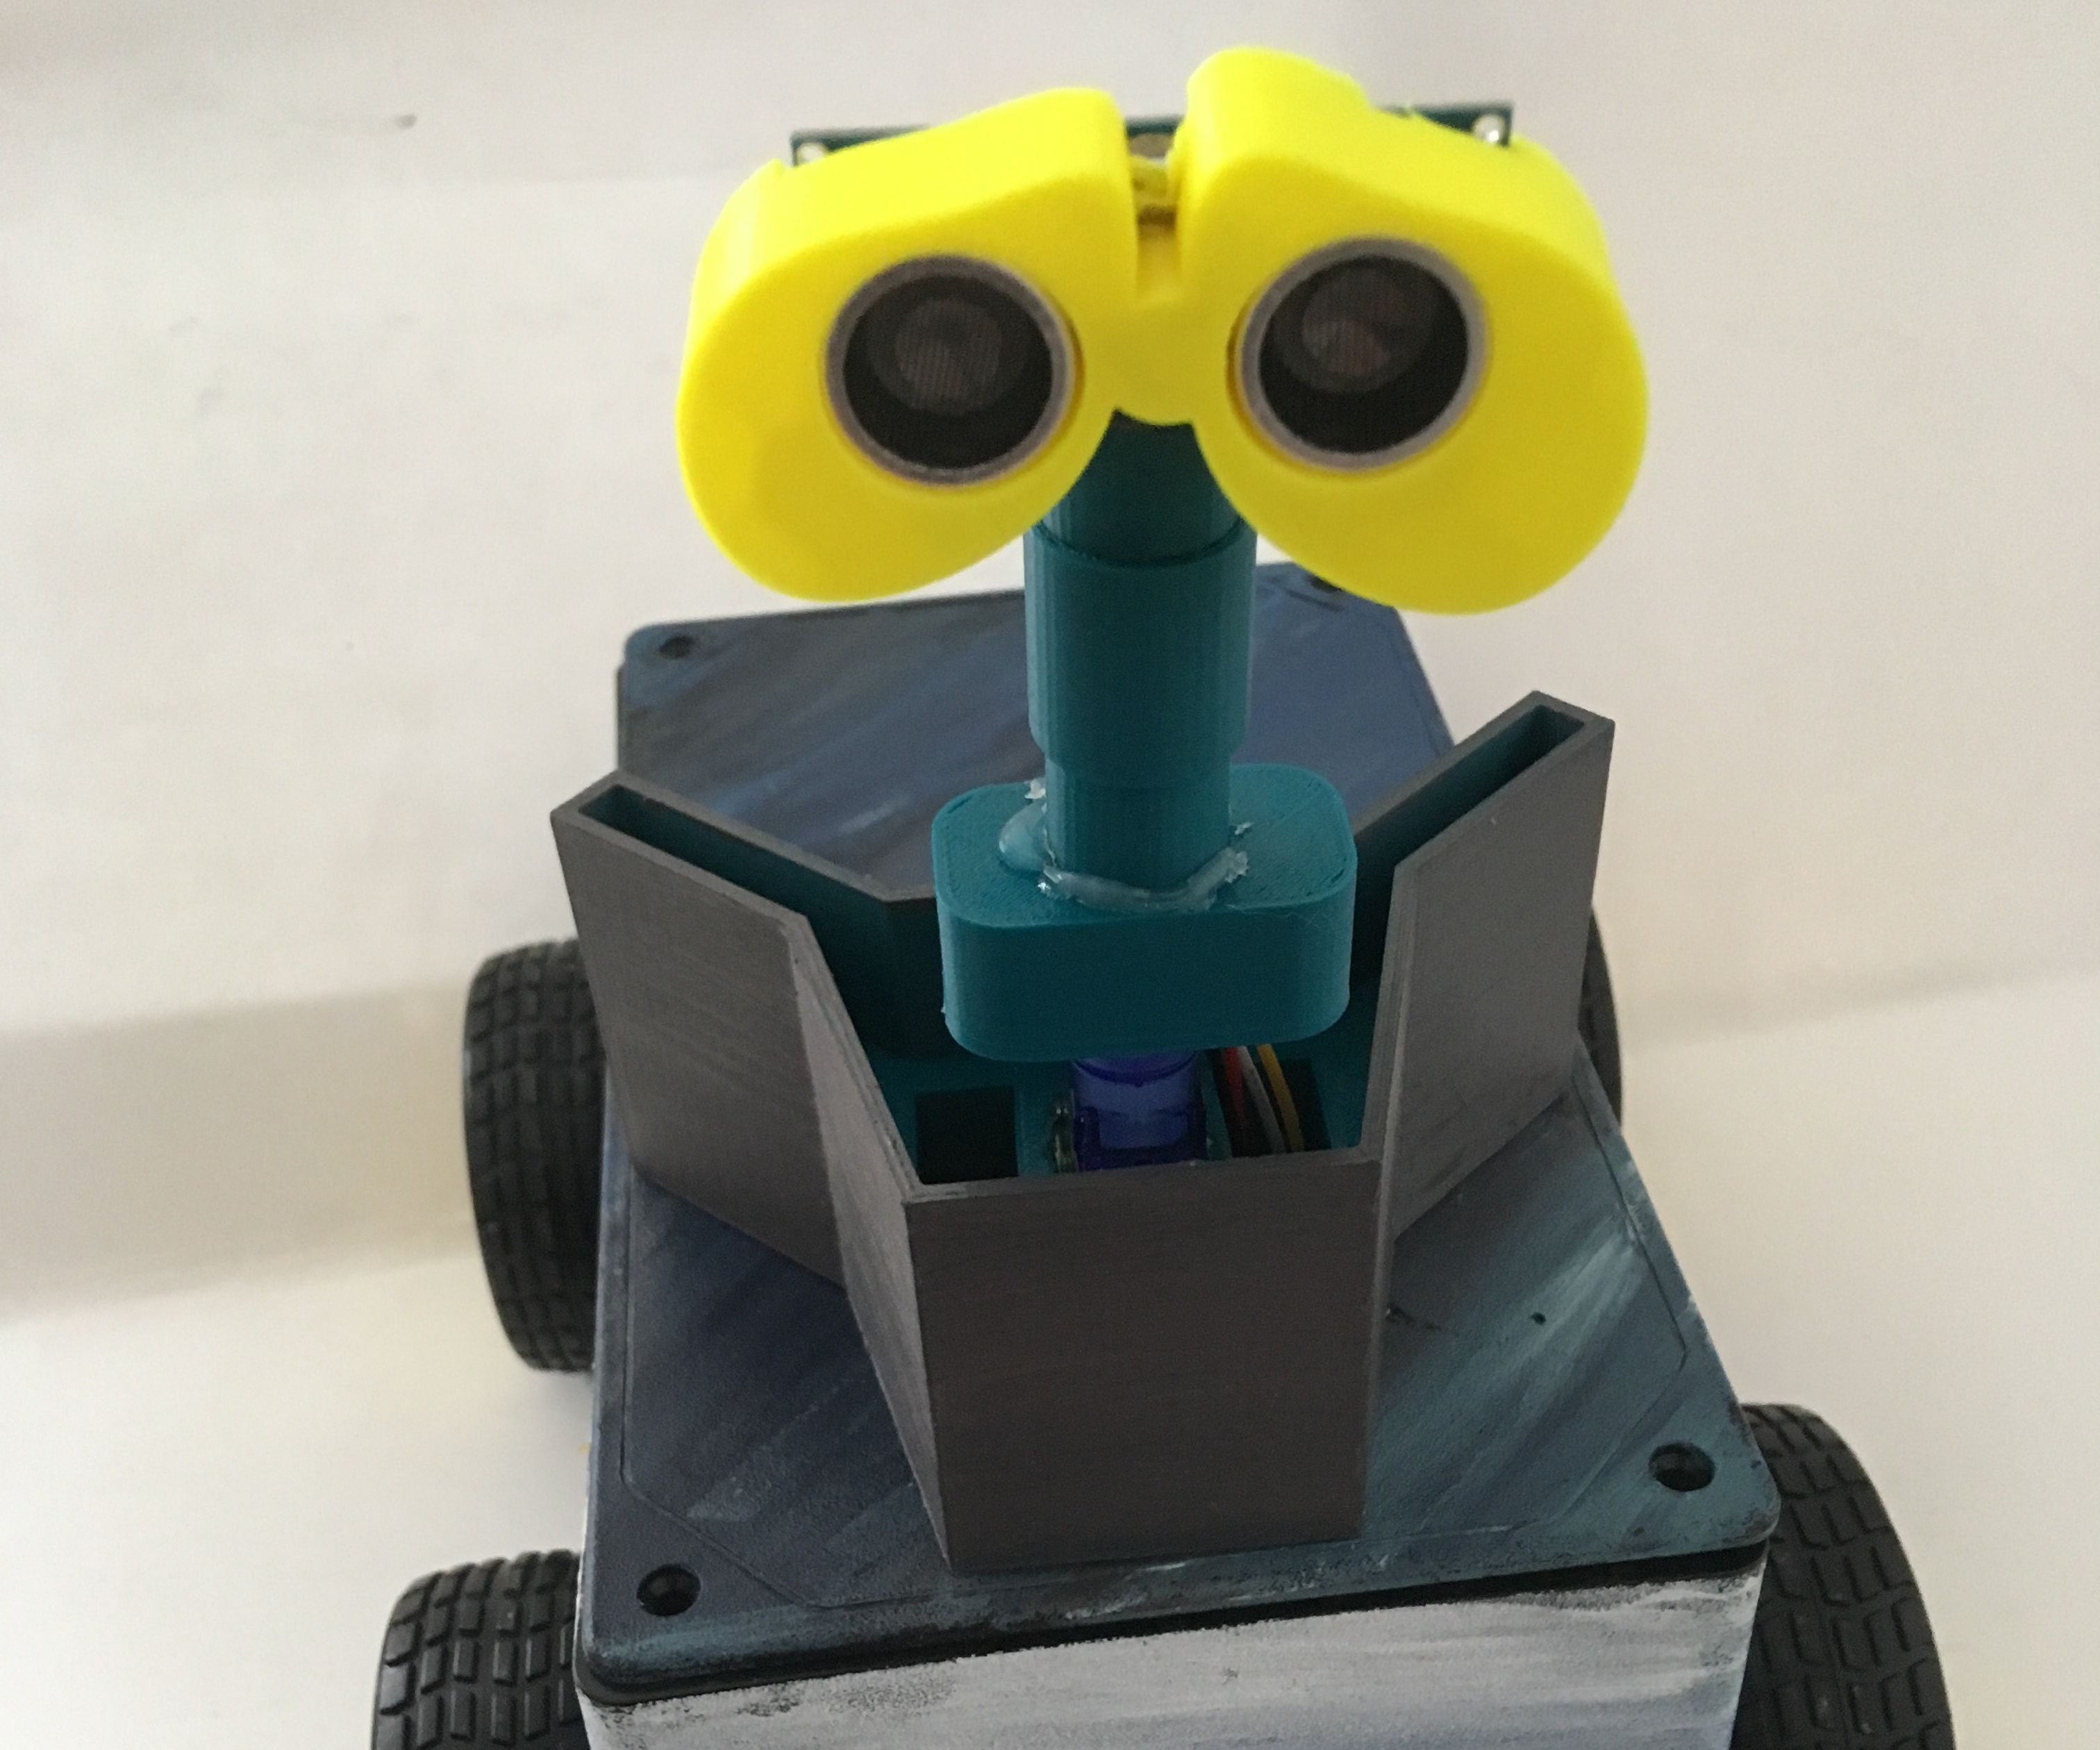 Rob the Automated Robot